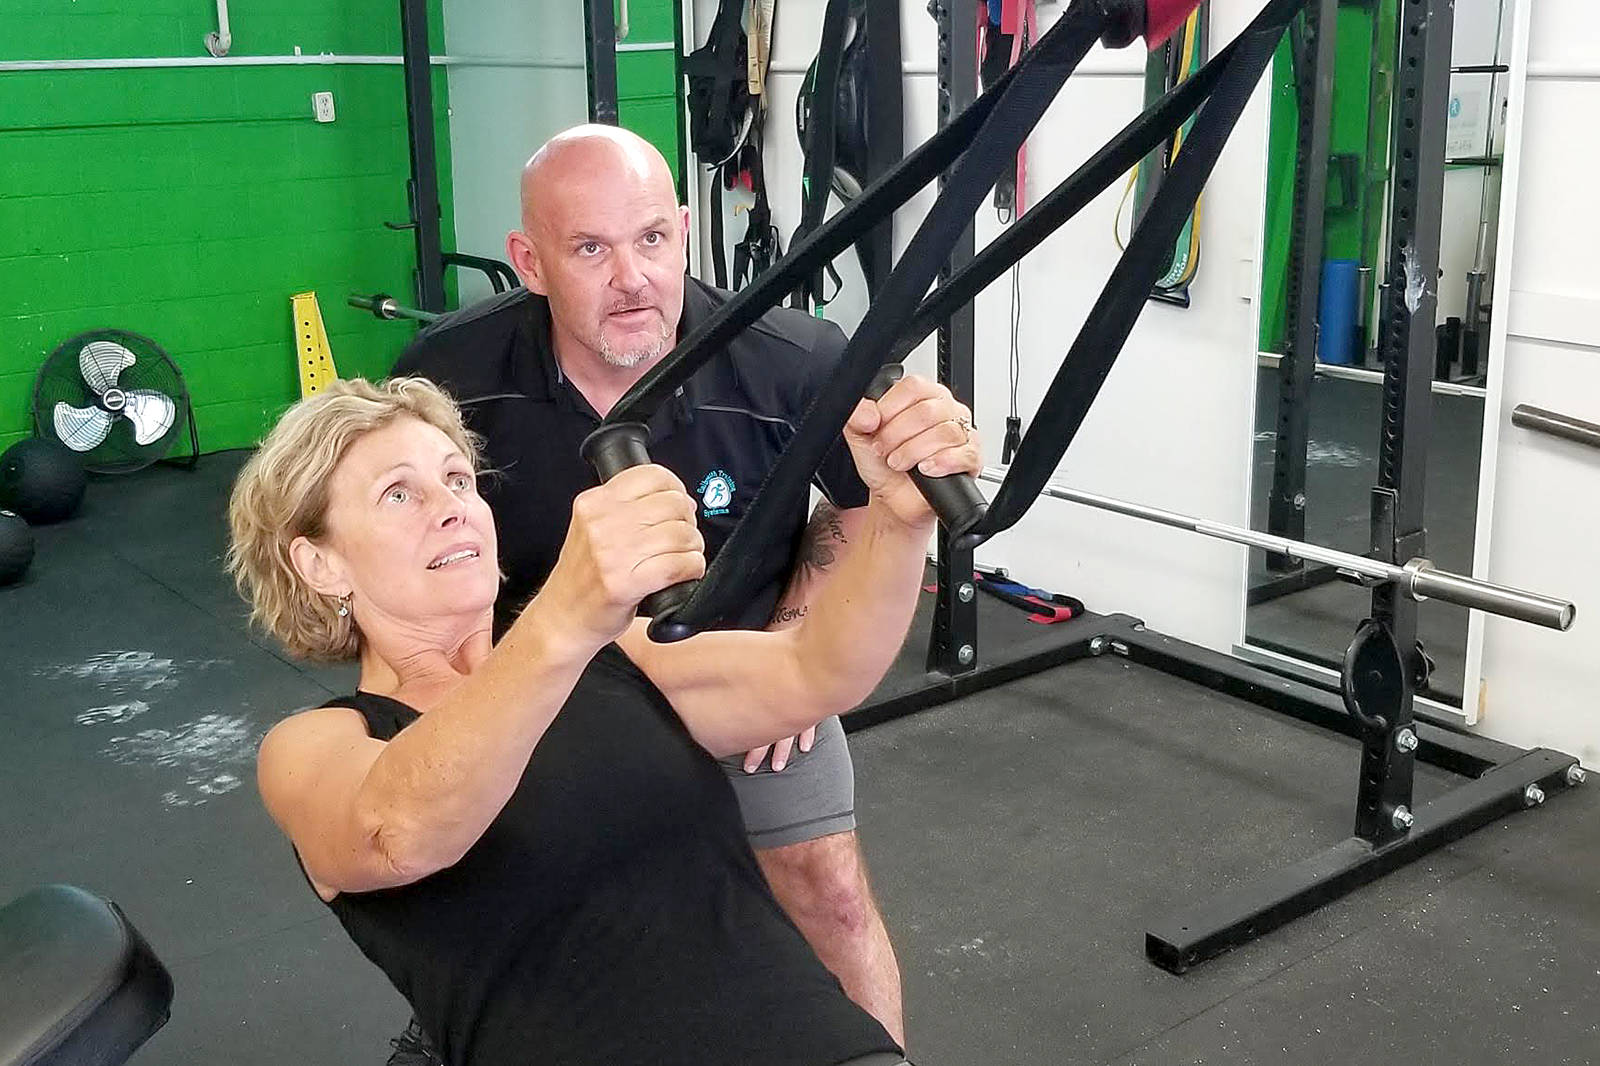 South Surrey woman promotes exercise to help fight Parkinson's disease